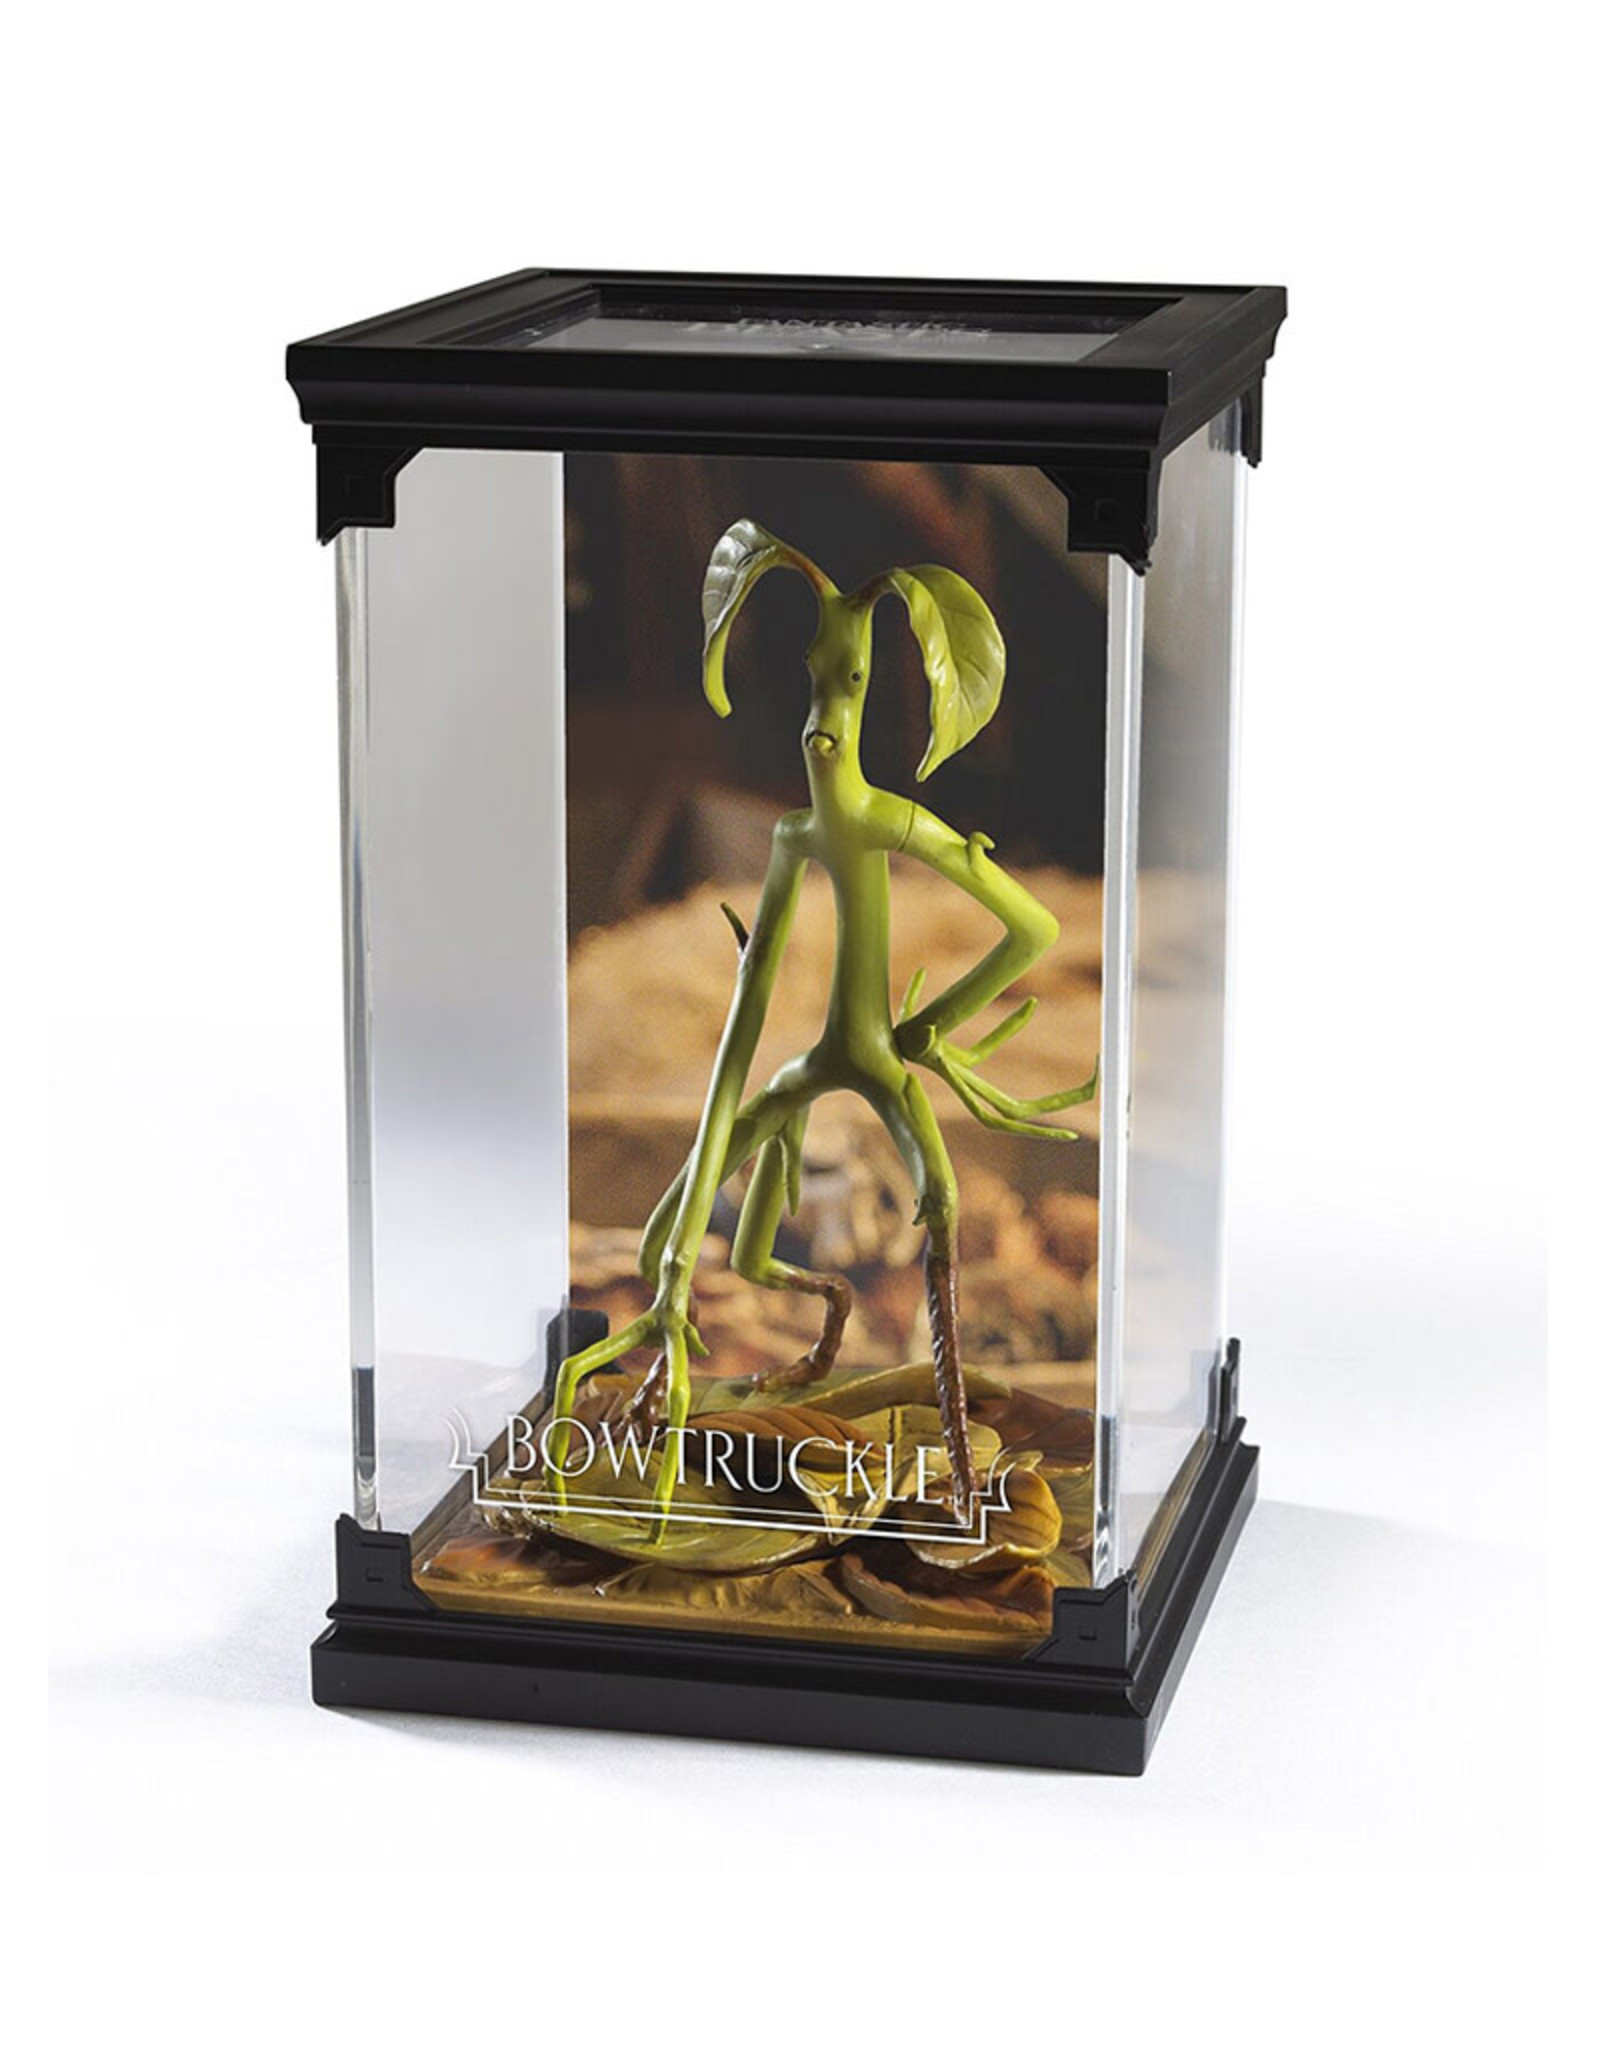 Harry Potter Harry Potter ( Figurine ) Bowtruckle from Fantastic Beasts